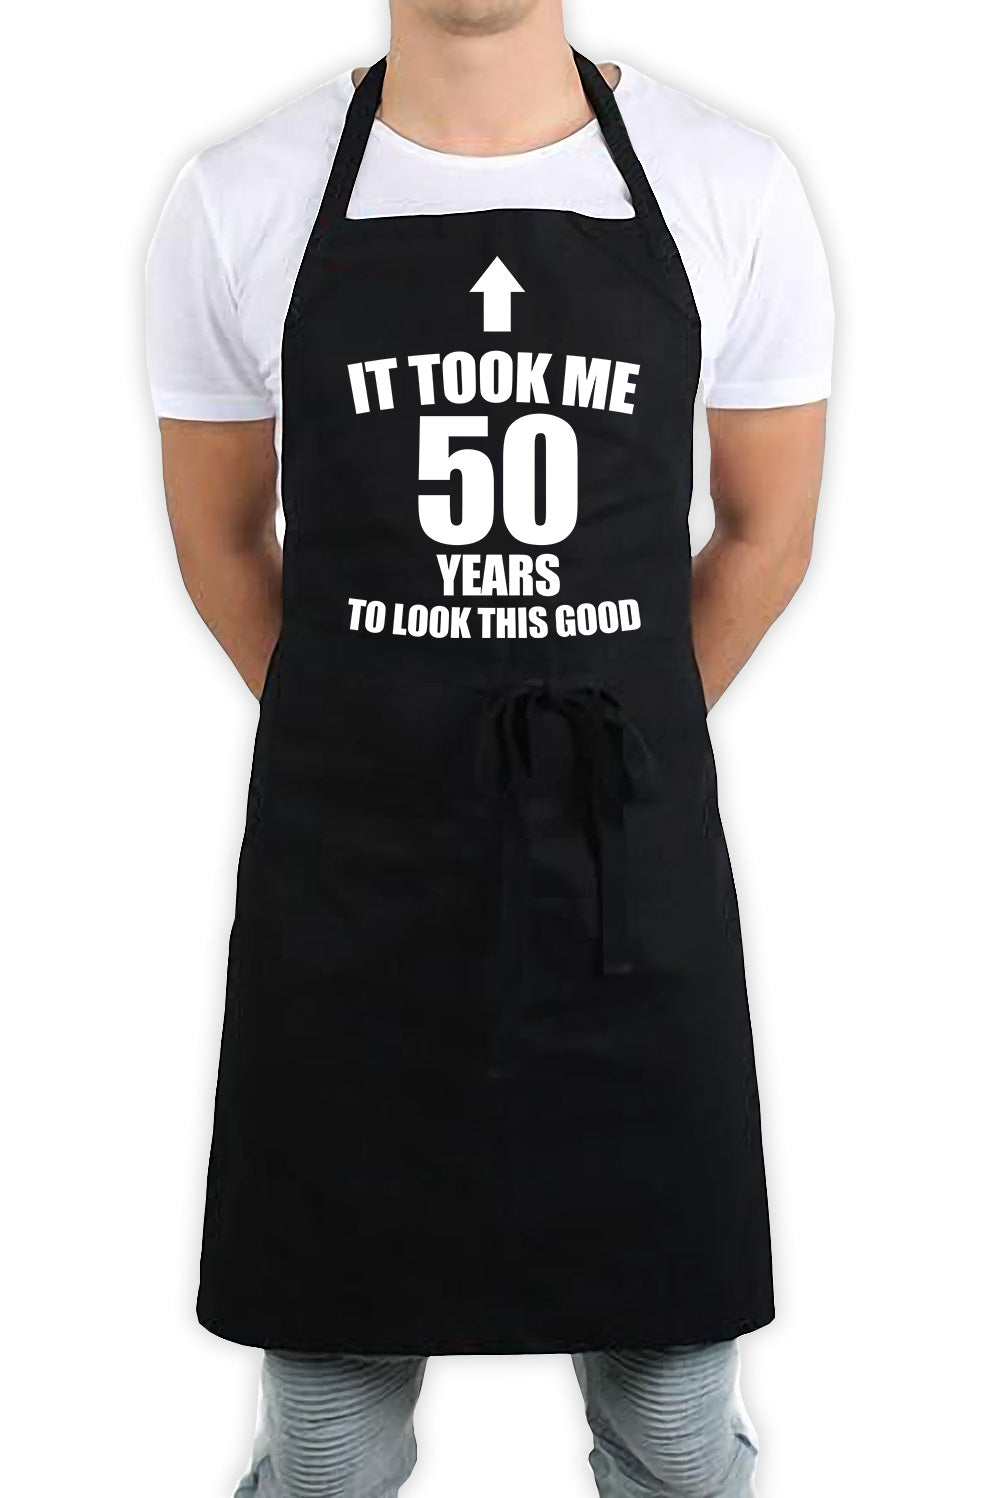 It Took Me 50 Years To Look This Good Funny Kitchen BBQ Apron Black